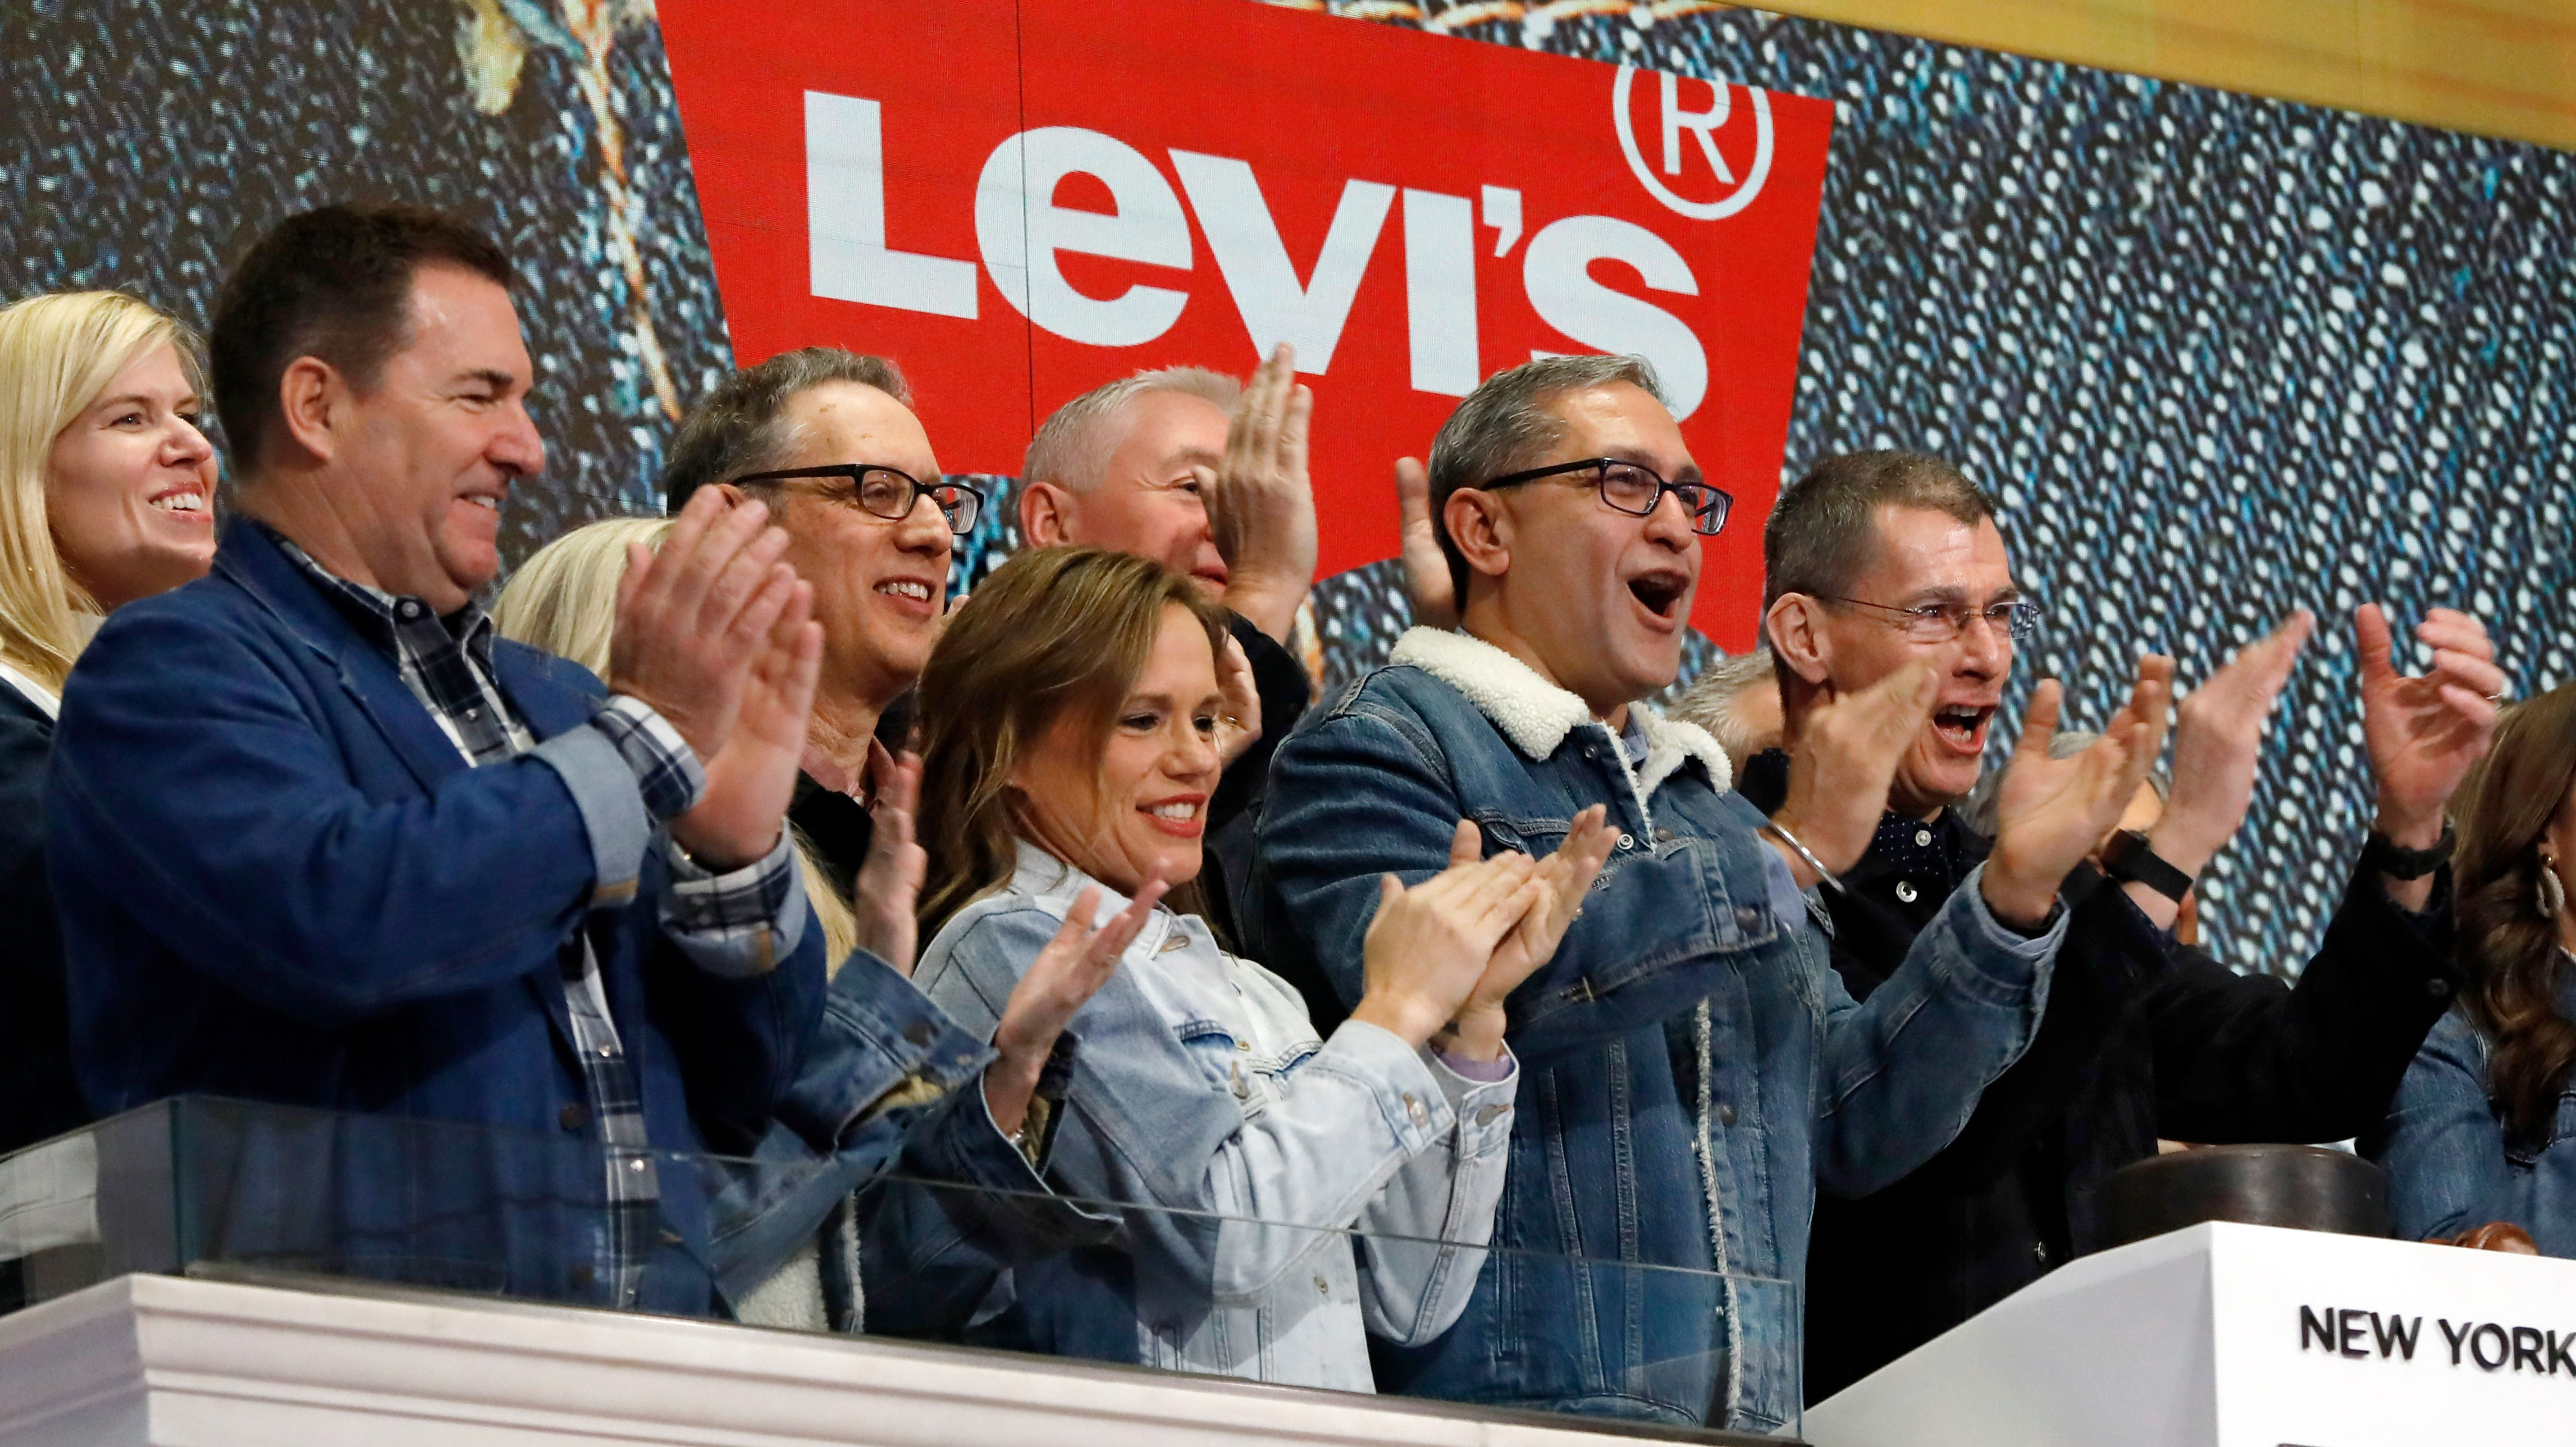 Levi Strauss IPO: Will going public change the company's values?